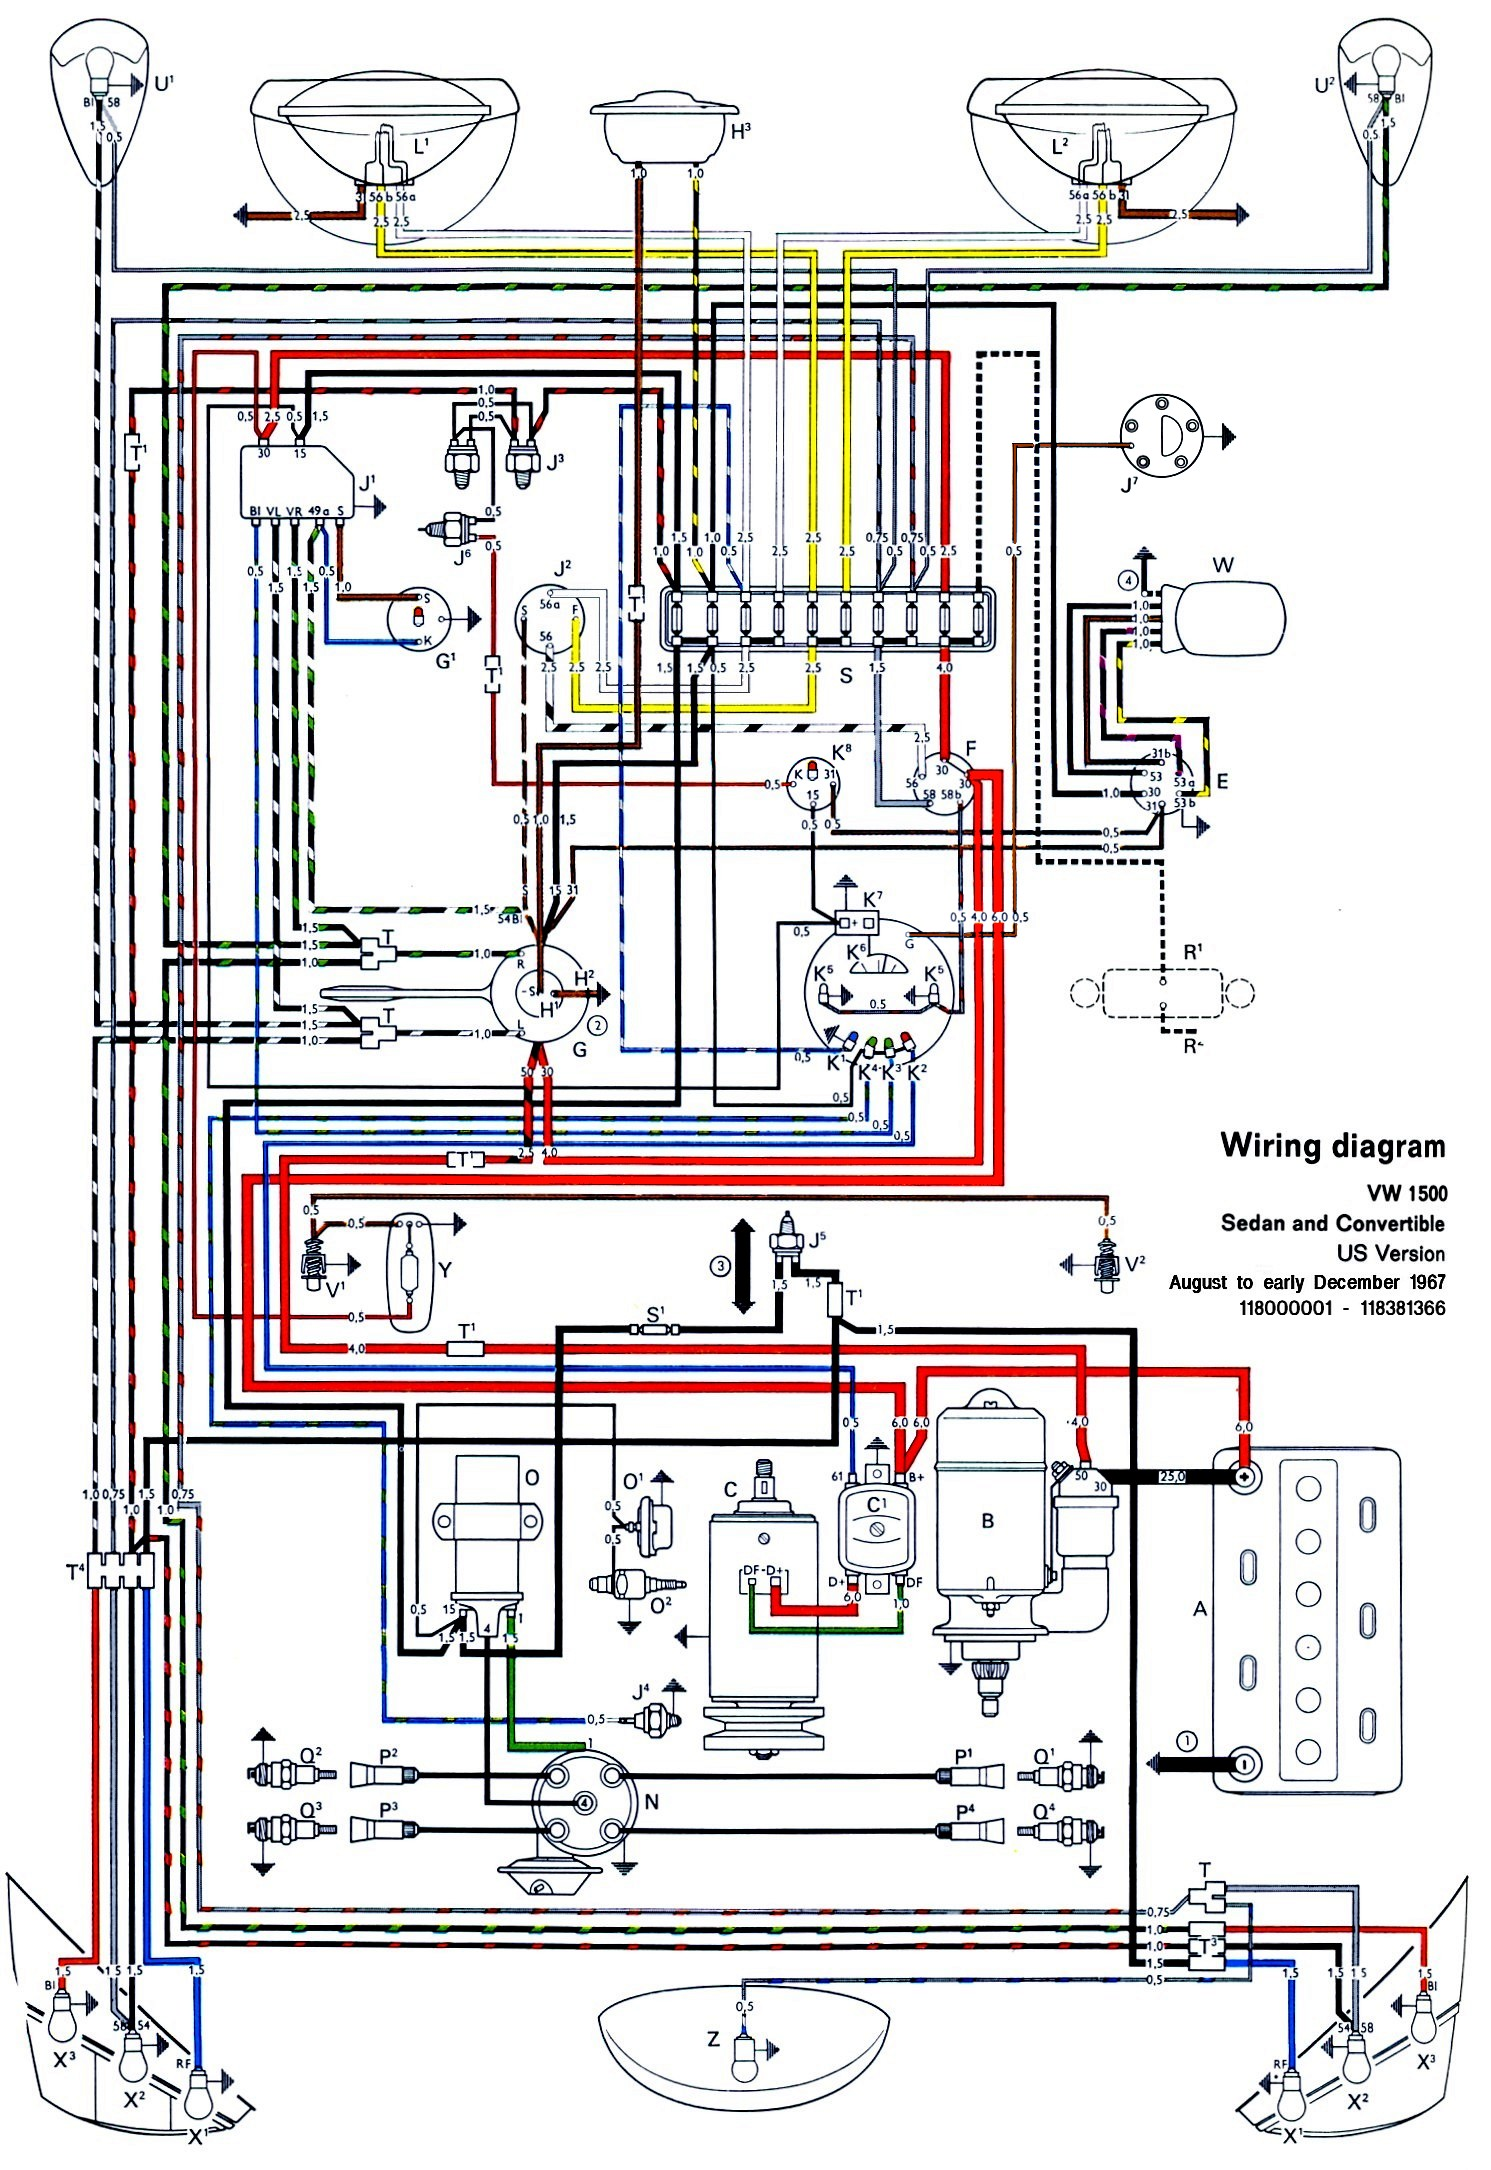 bug_68_early_usa?resize=665%2C968&ssl=1 diagrams 19191168 vw golf wiring diagram electrical wiring vw golf 3 electrical wiring diagram at webbmarketing.co